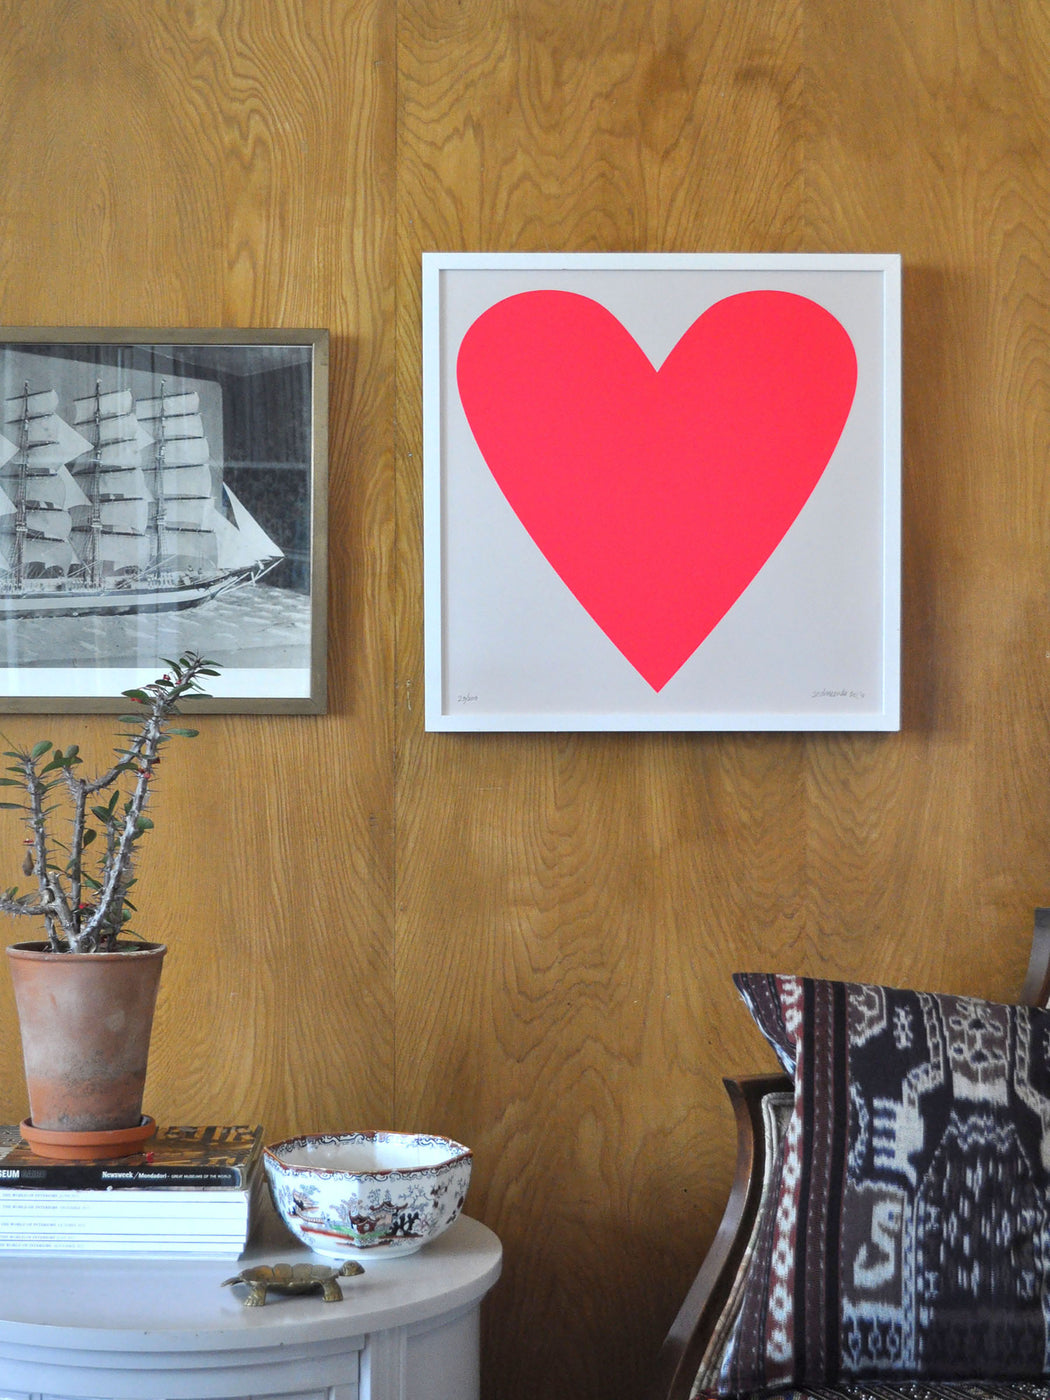 Styled shot of Banquet Workshop's iconic neon red heart with a tall ship and ikat.